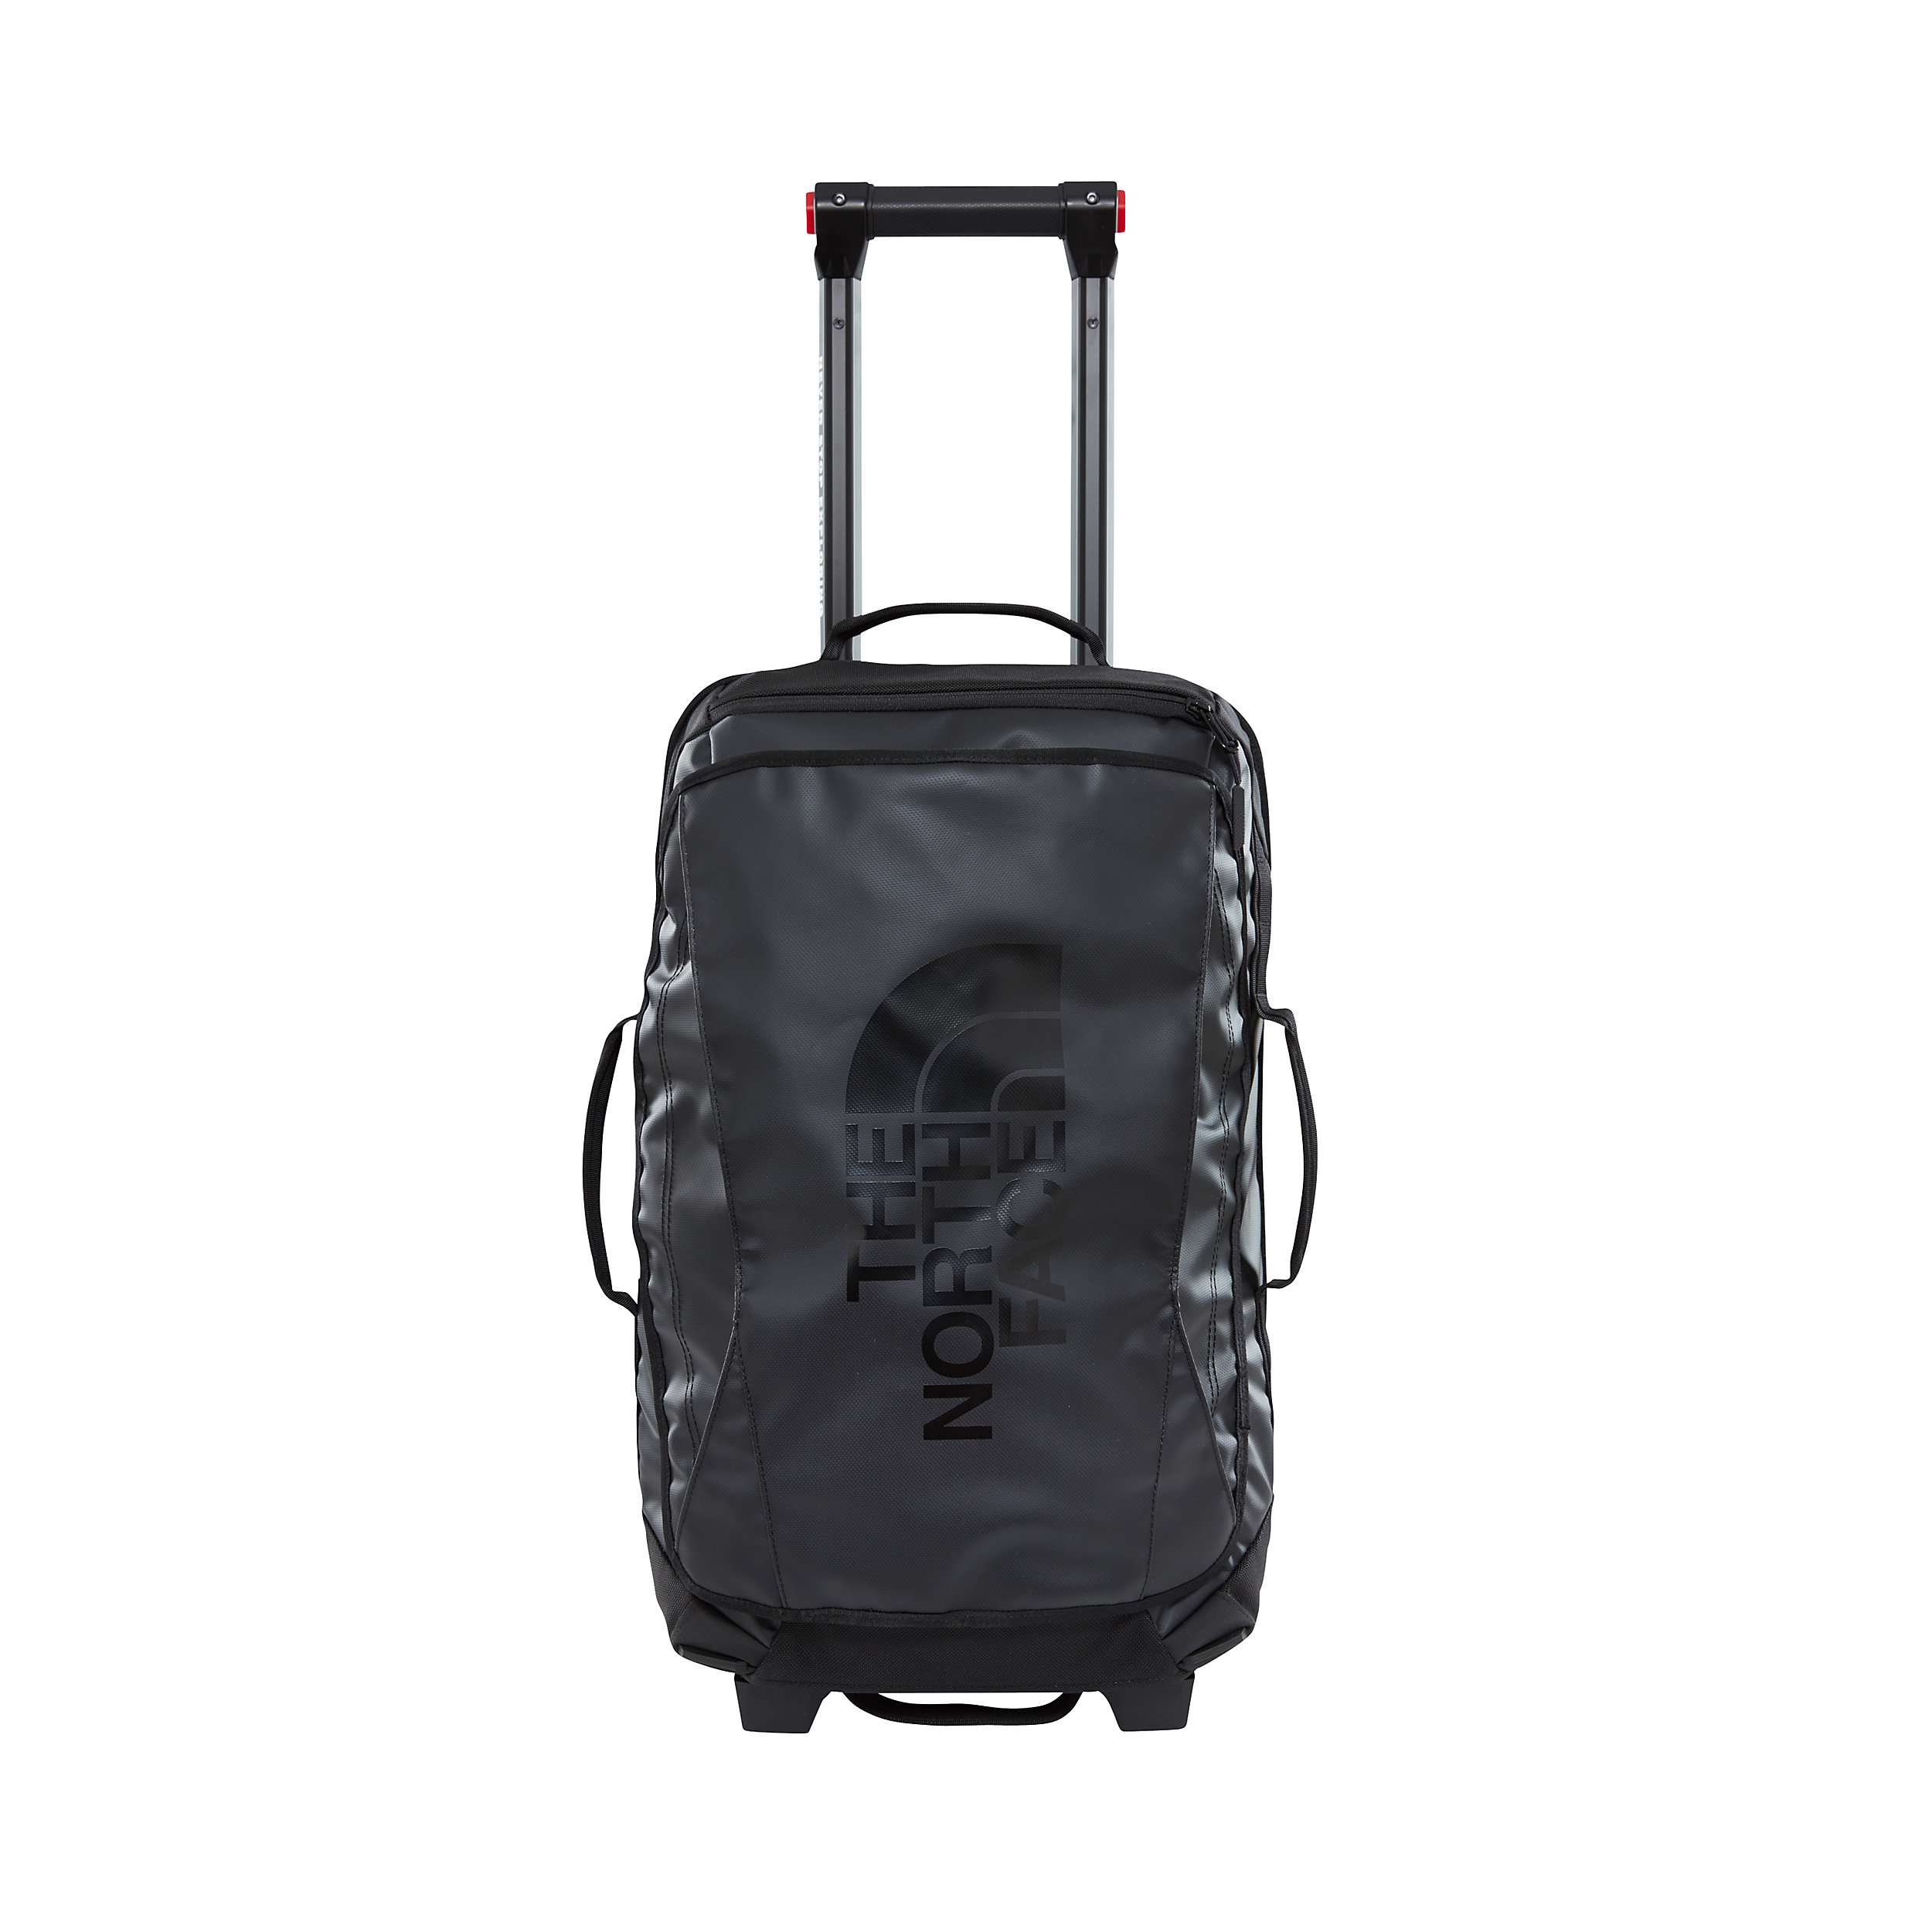 Carry-on Trolley with 2 wheels Rolling Thunder 22 inch XS 40 Liter